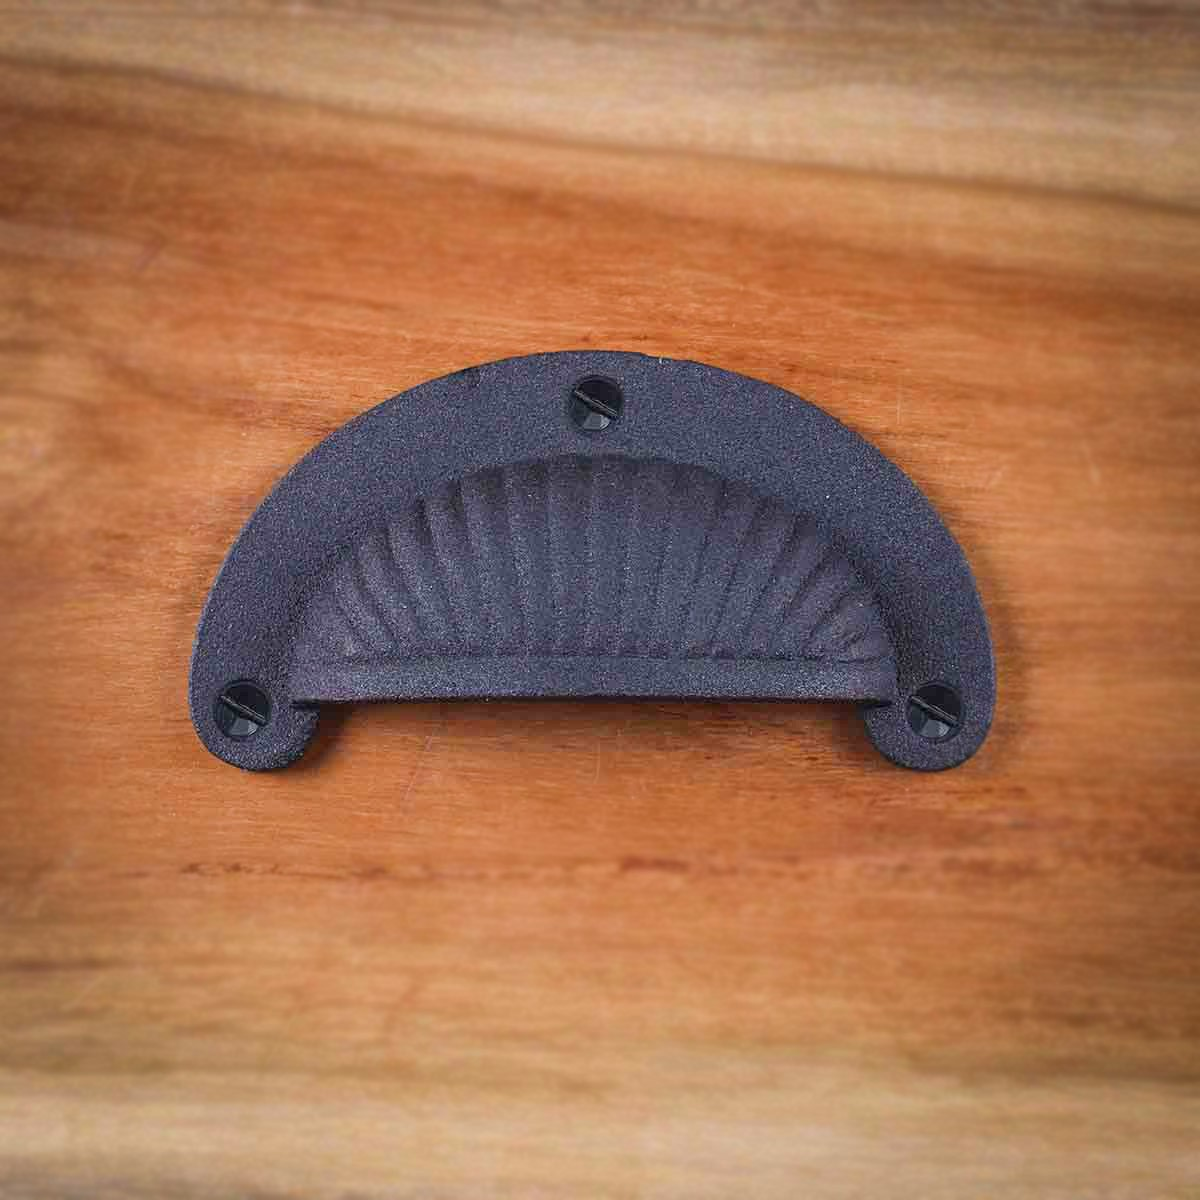 Black Wrought Iron Cup Pull 3 78 W, 3 516 Boring Antique Cast Iron Cabinet Cup Pull Cabinet Pull Cabinet Hardware